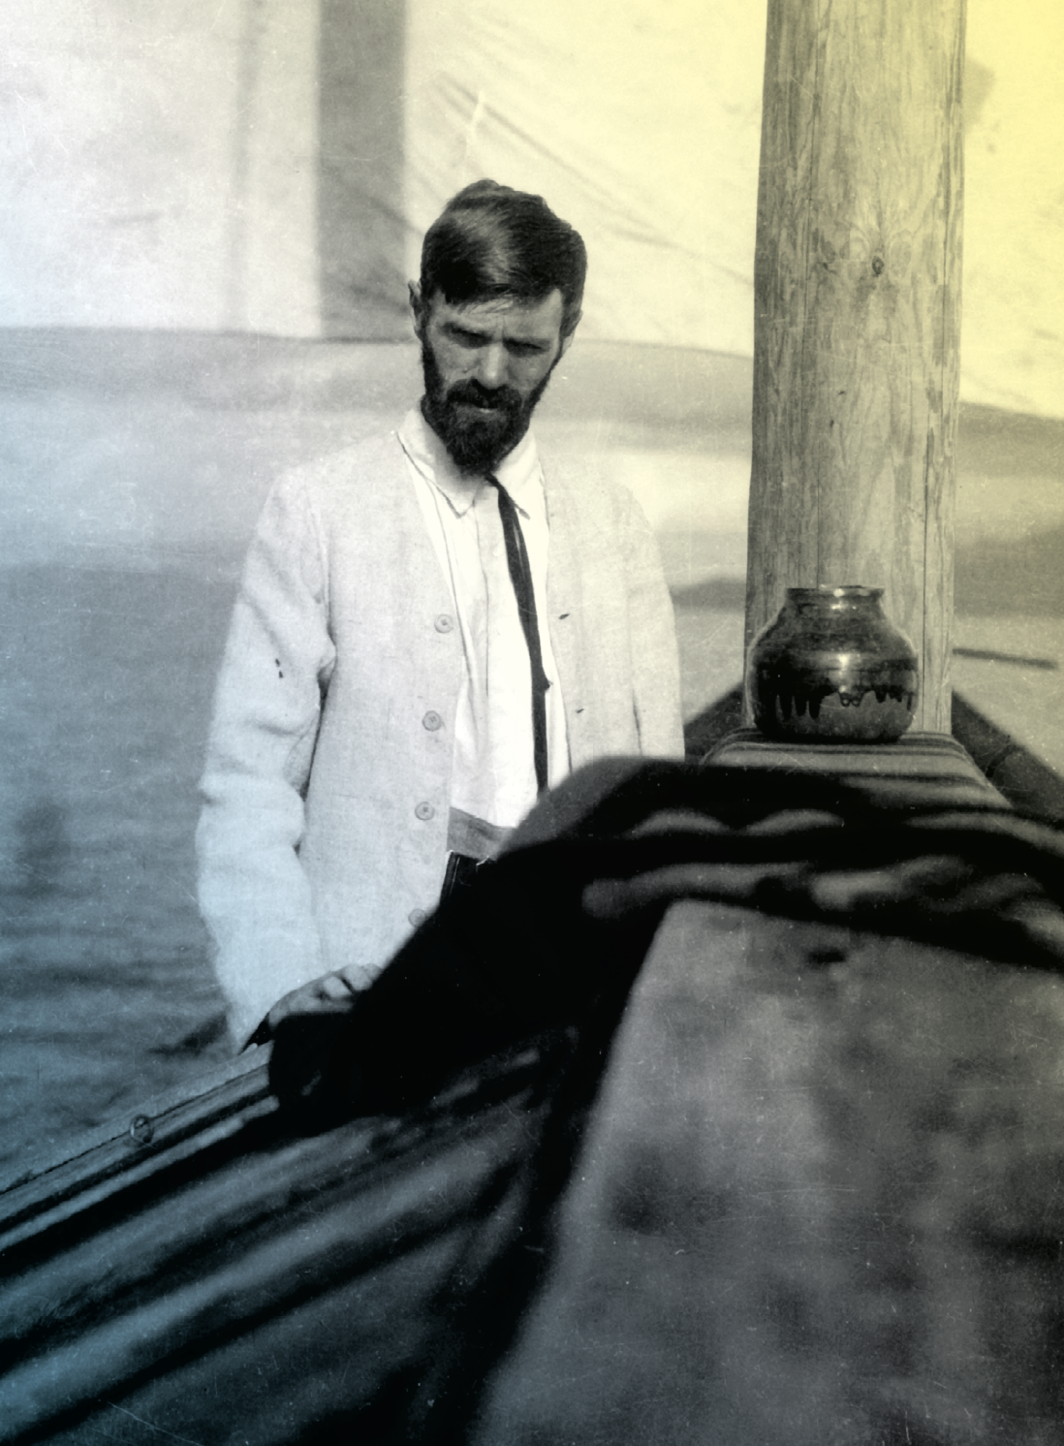 D.H. Lawrence, Lake Chapala, Mexico, 1923. Witter Bynner; Courtesy University of Nottingham Manuscripts and Special Collections